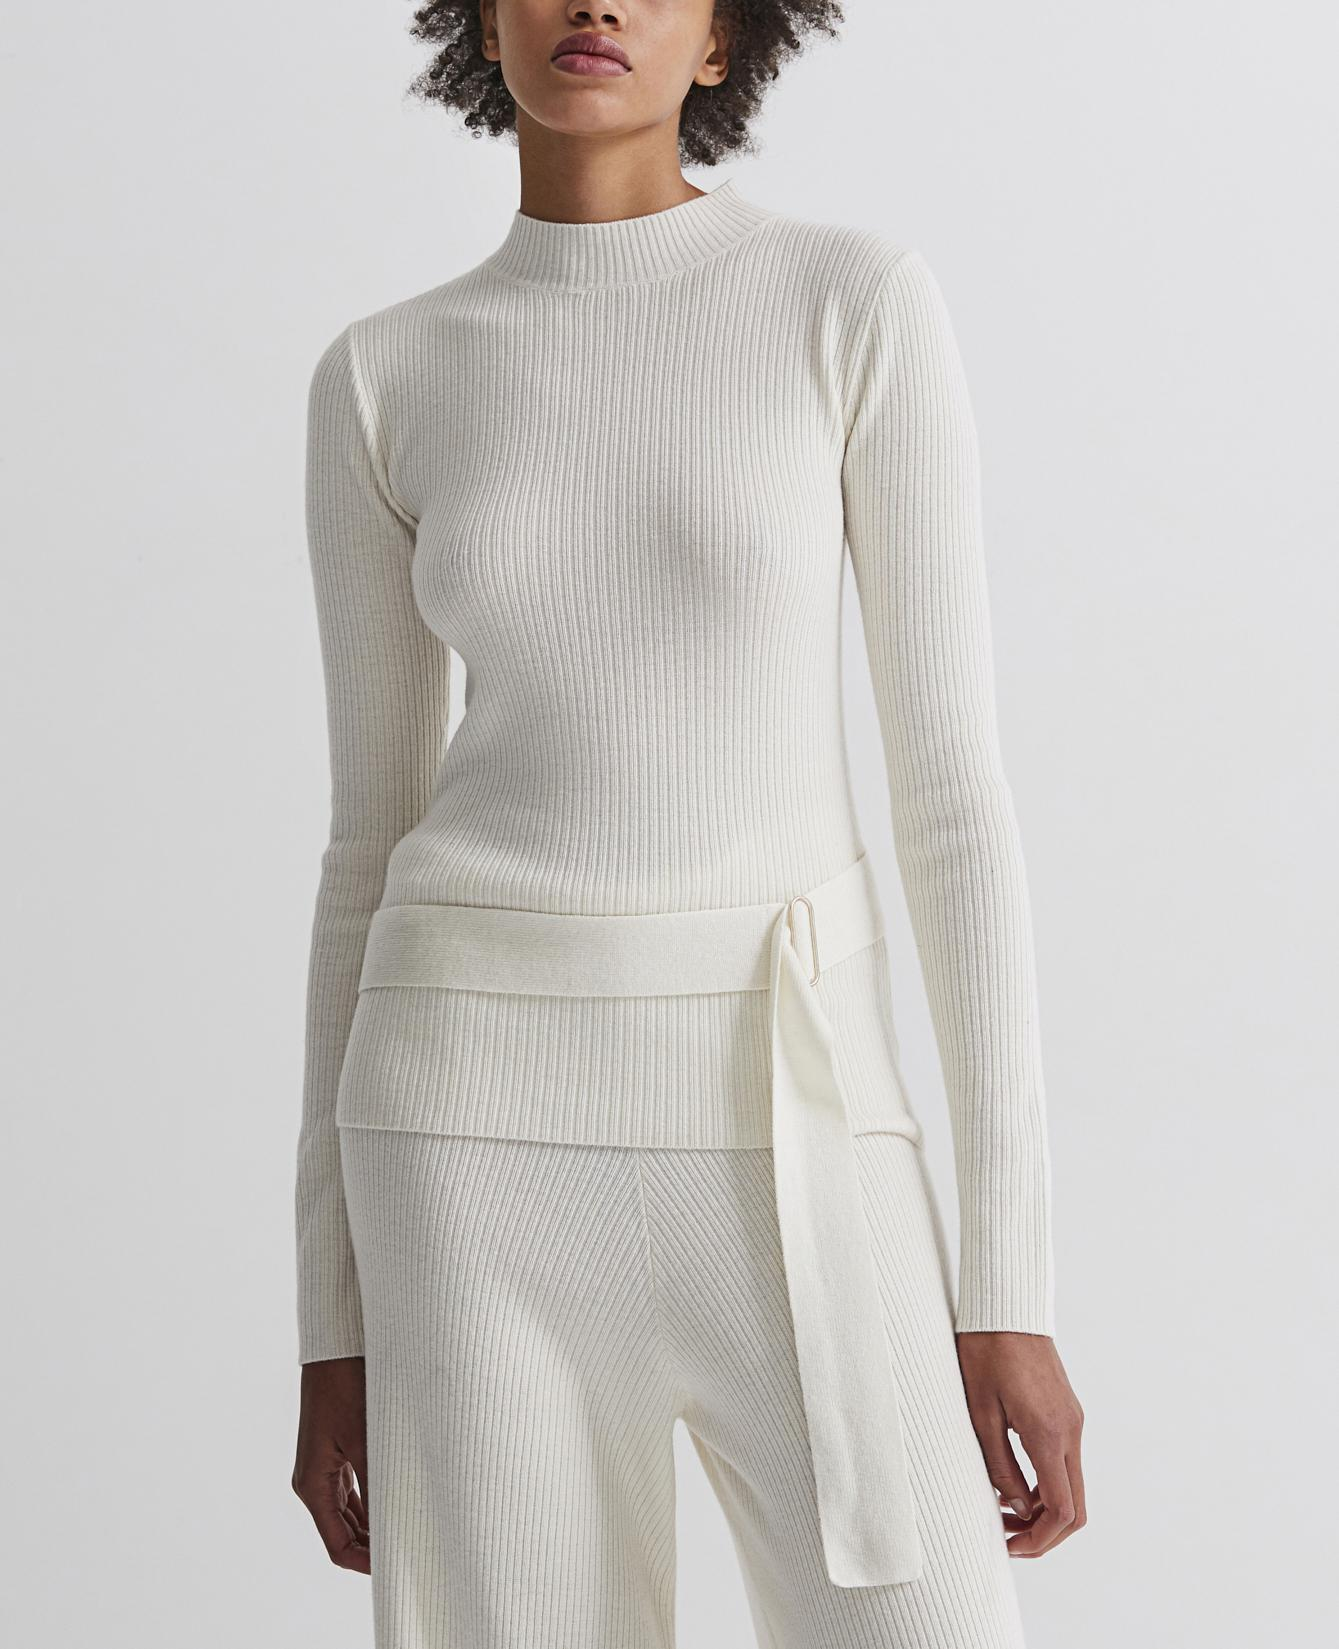 The Quinton Mock Neck Knit